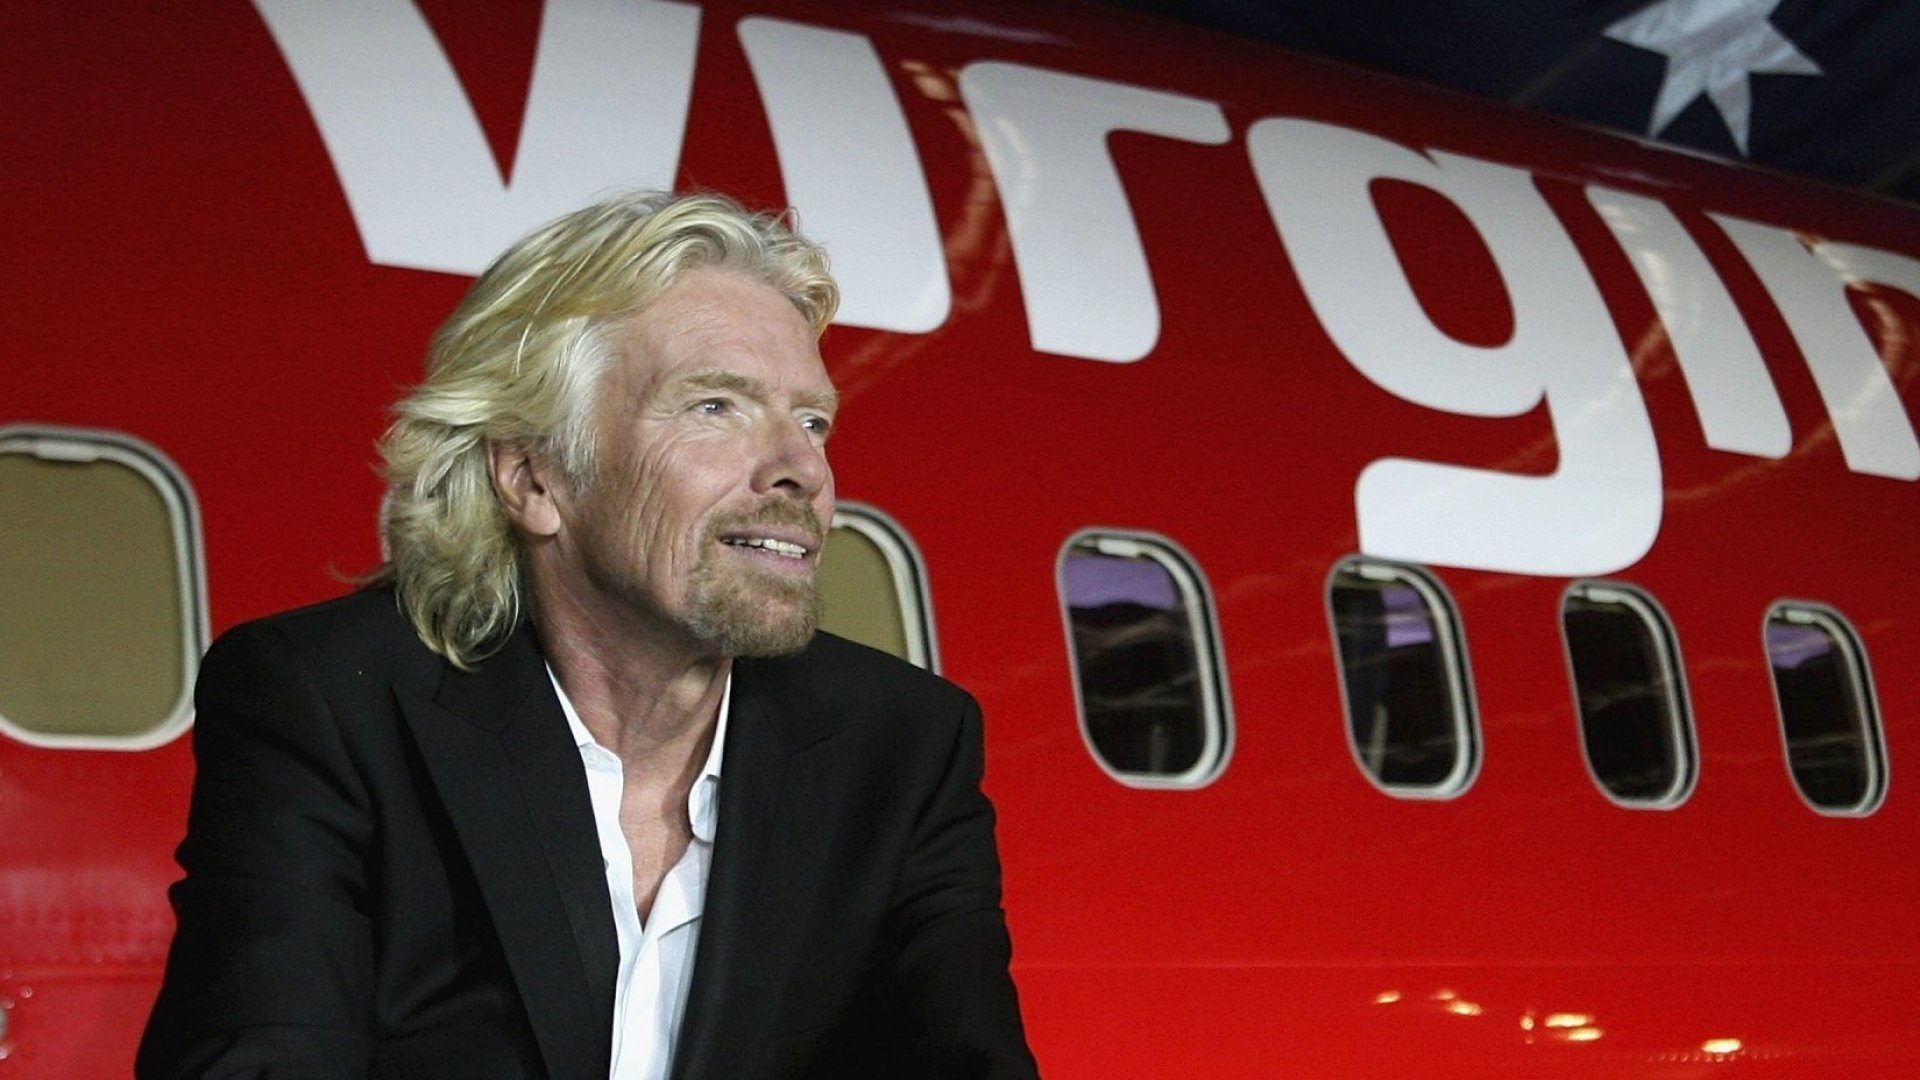 This Is the 1 Thing Richard Branson Wishes He Could Do Over Again